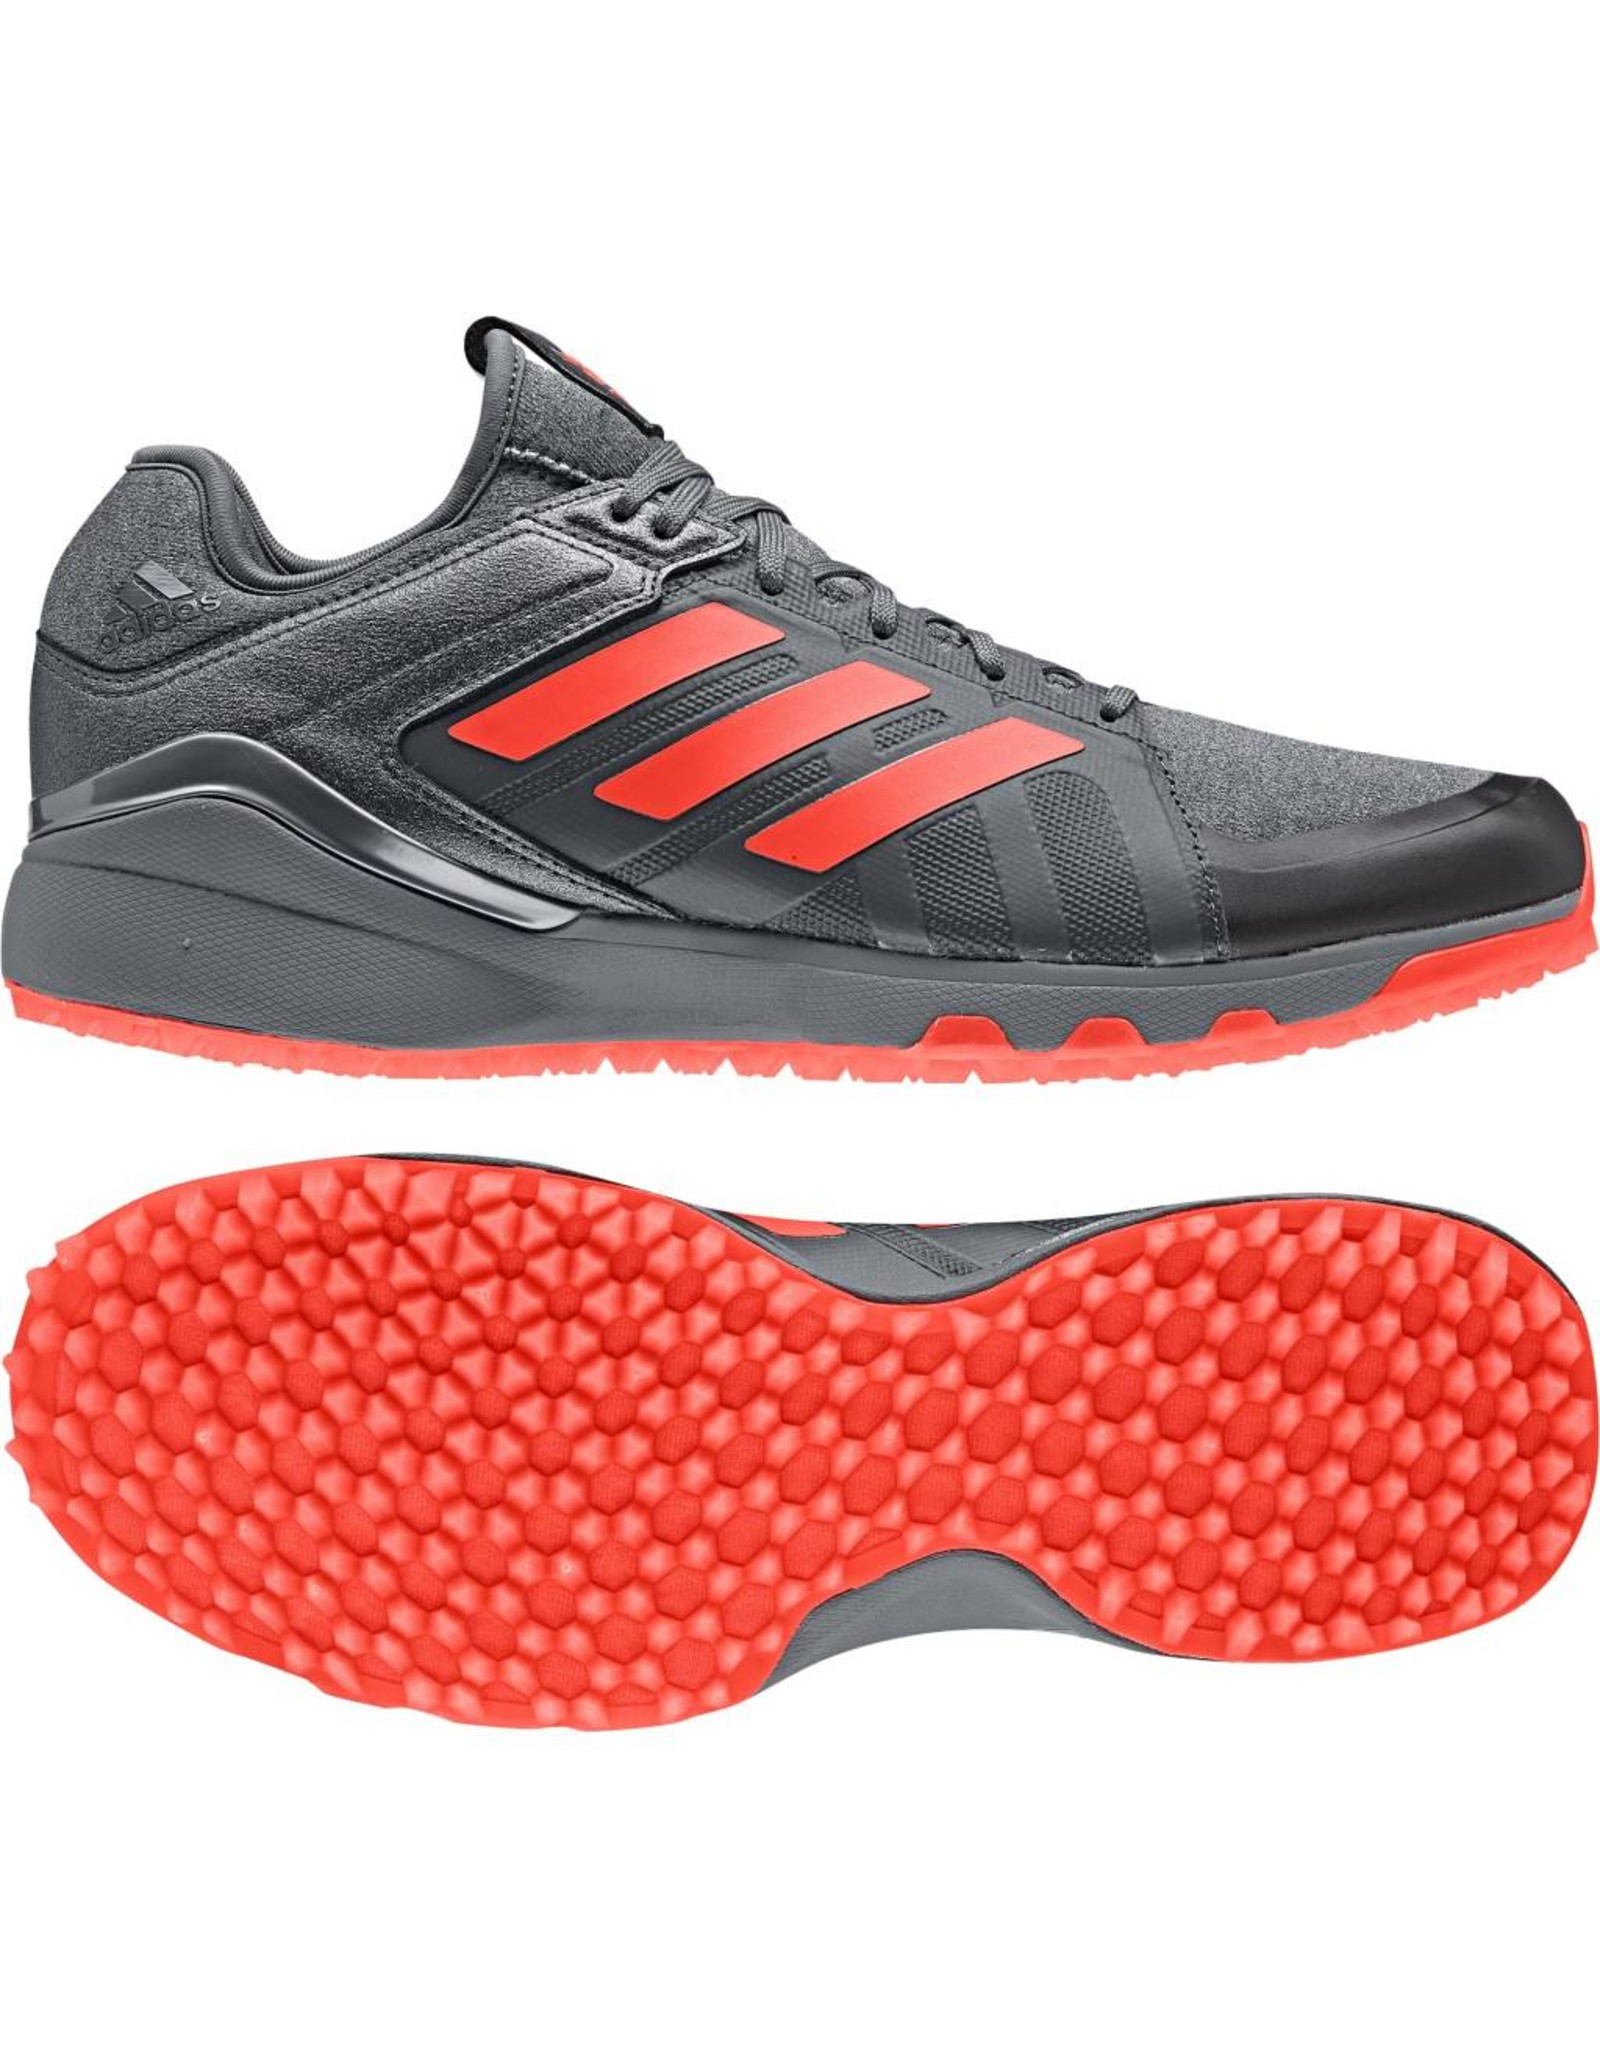 ADIDAS ADIDAS LUX 1.9S 18/19 BL/RED 46 2/3